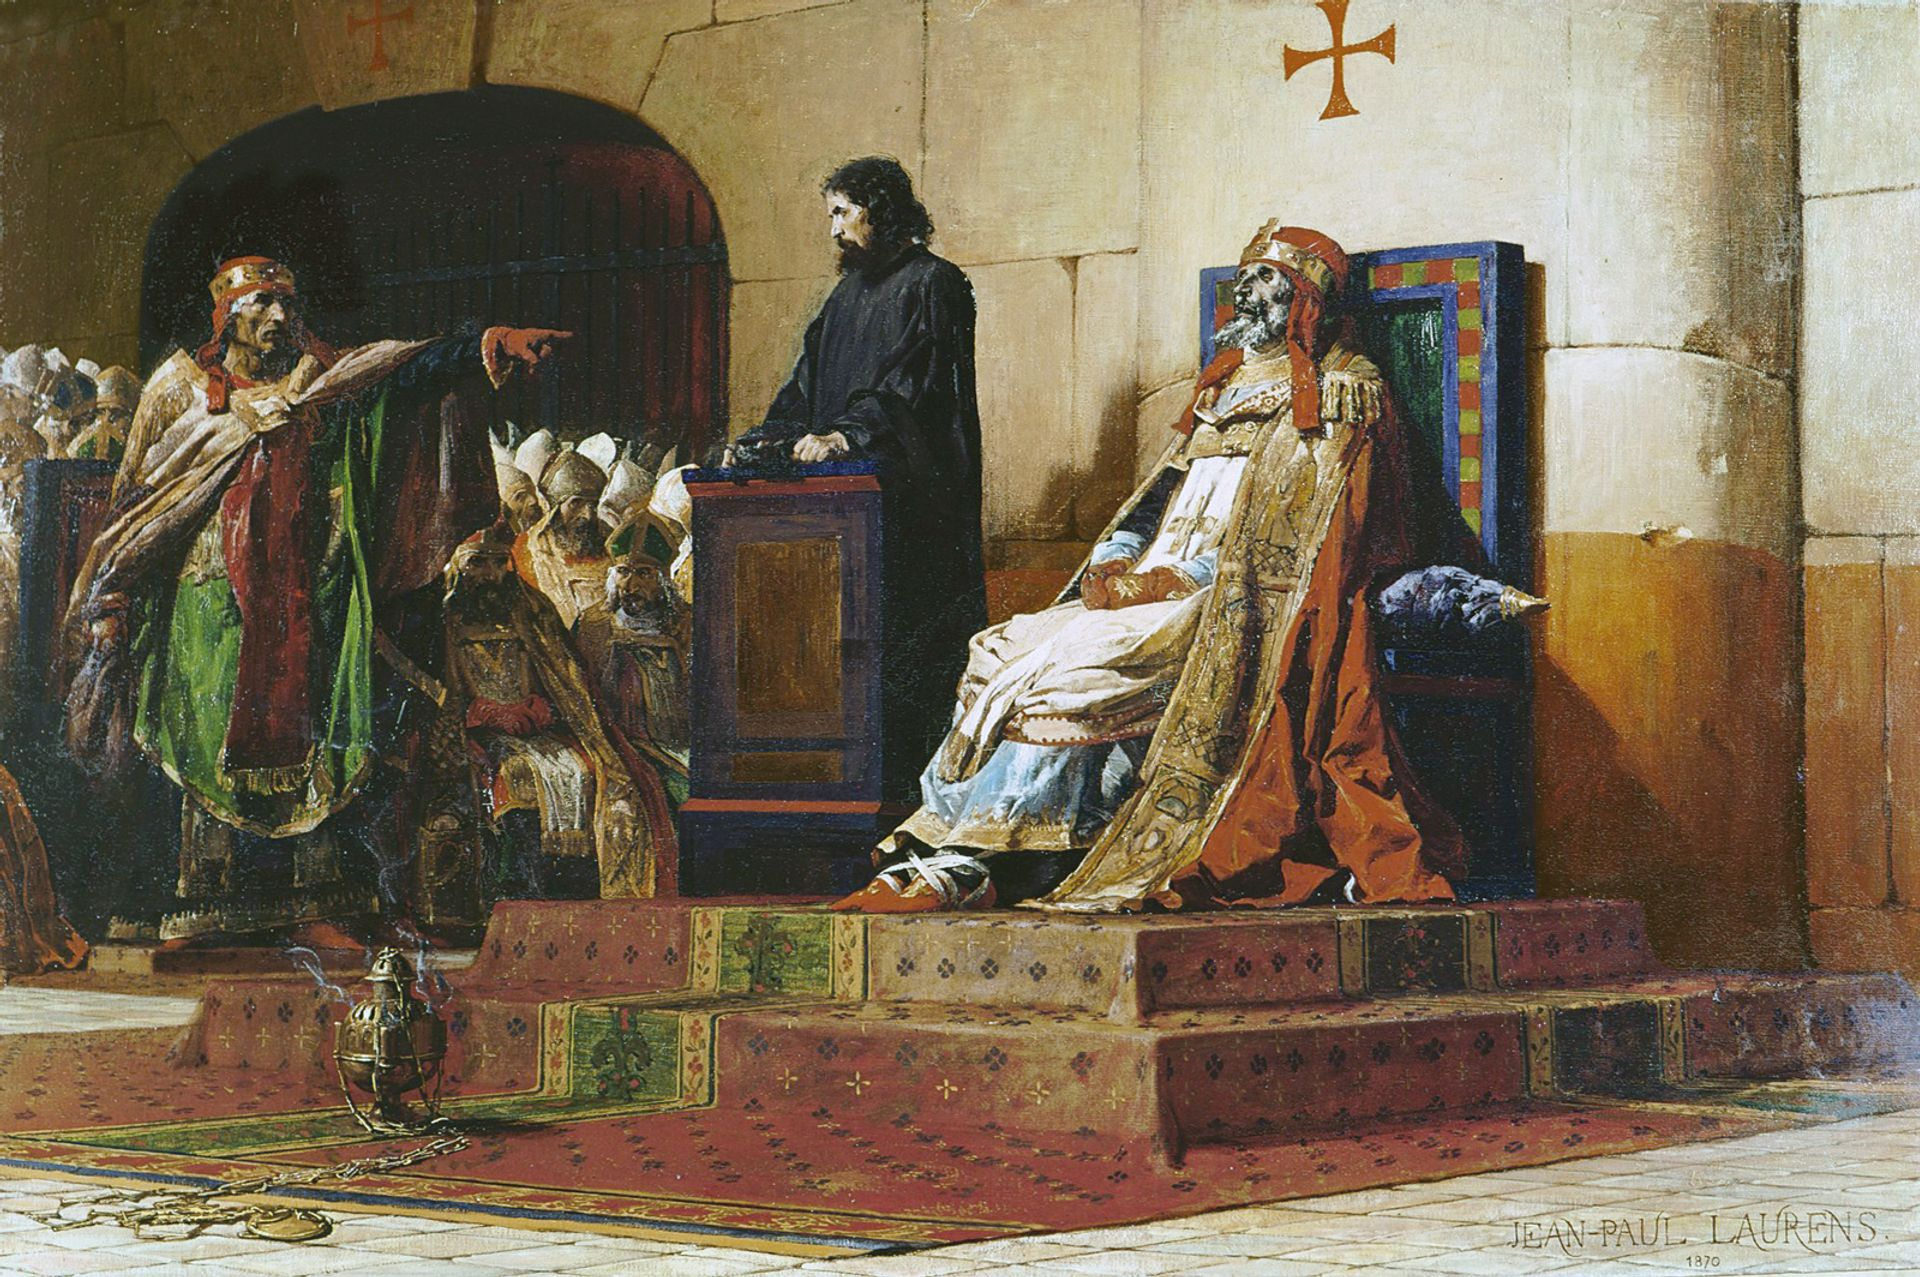 Anticlerical: Jean-Paul Laurens painted Pope Formosus and Stephen VII (1870) as a historic pointer to the church's backwardness and barbarity The artist